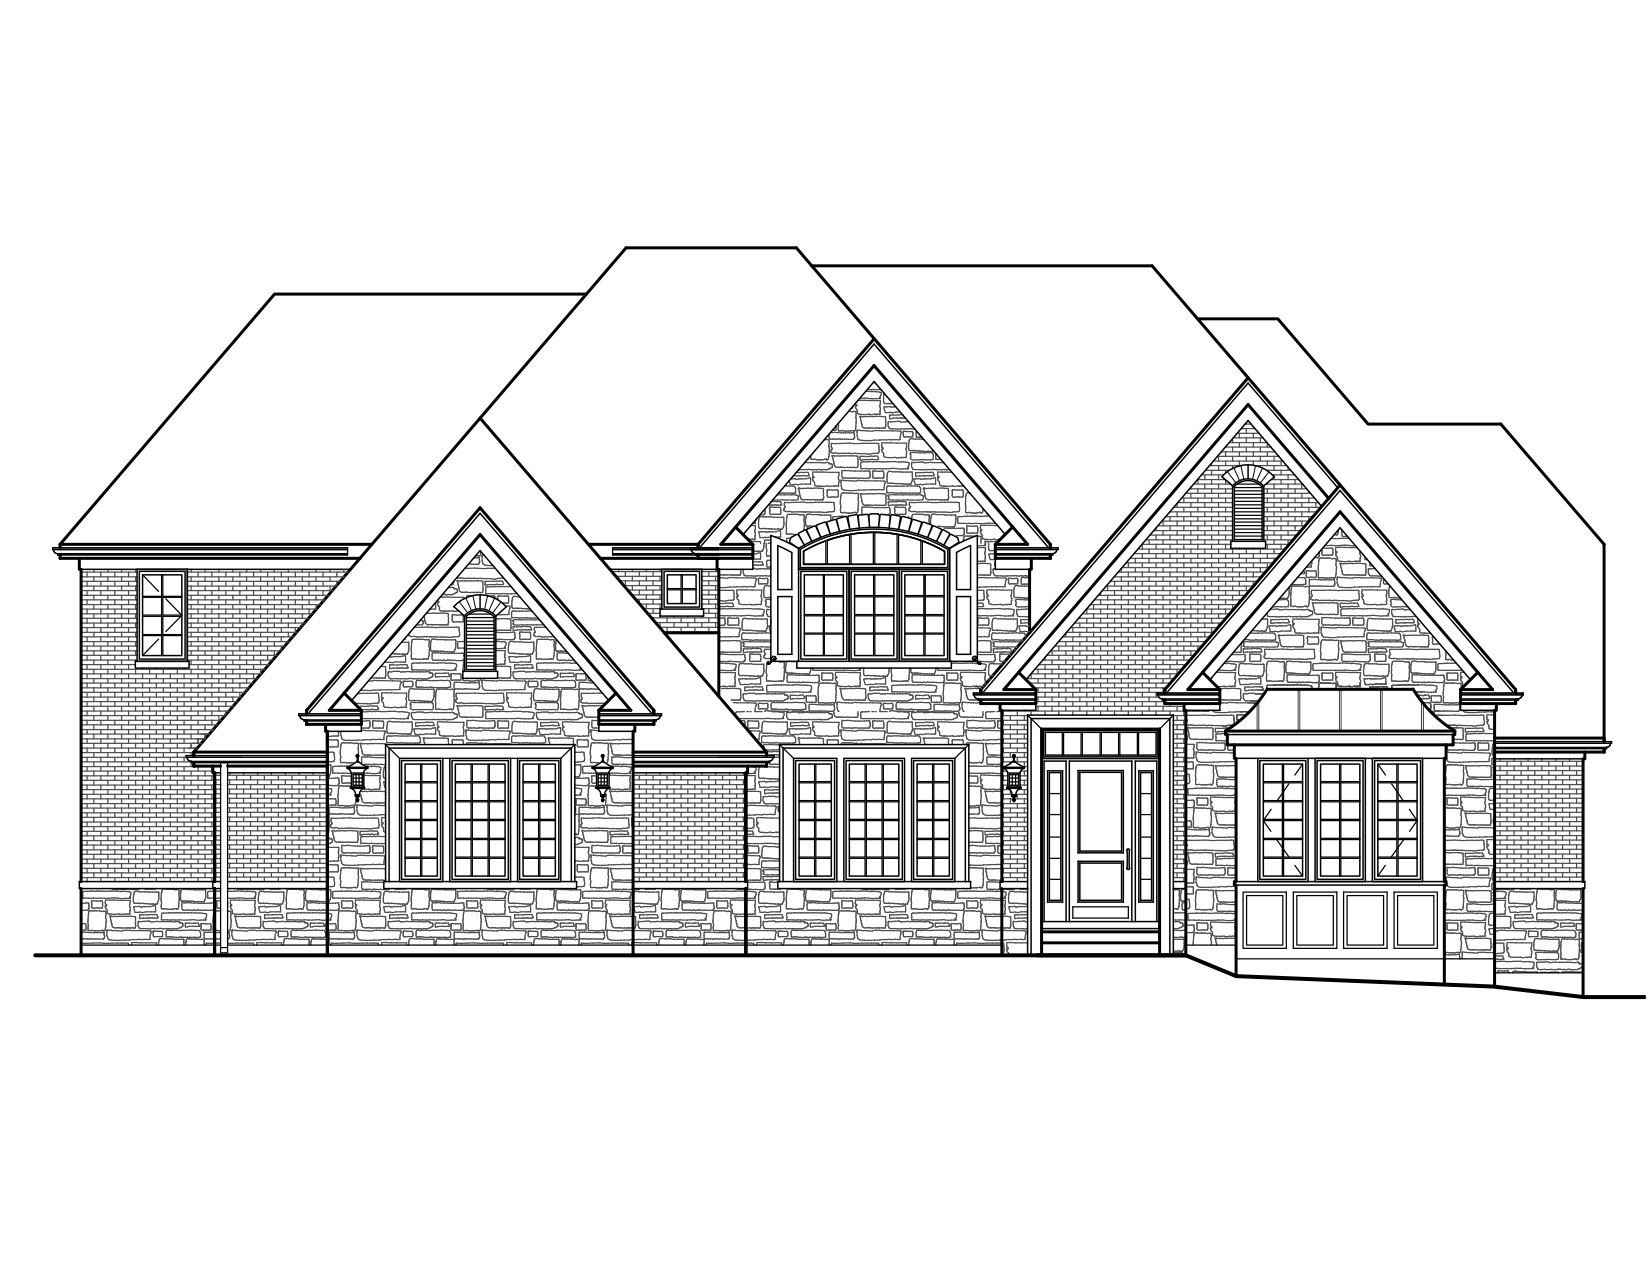 Photo of 1165 Waller Rd, Brentwood, TN 37027 (MLS # 2225548)